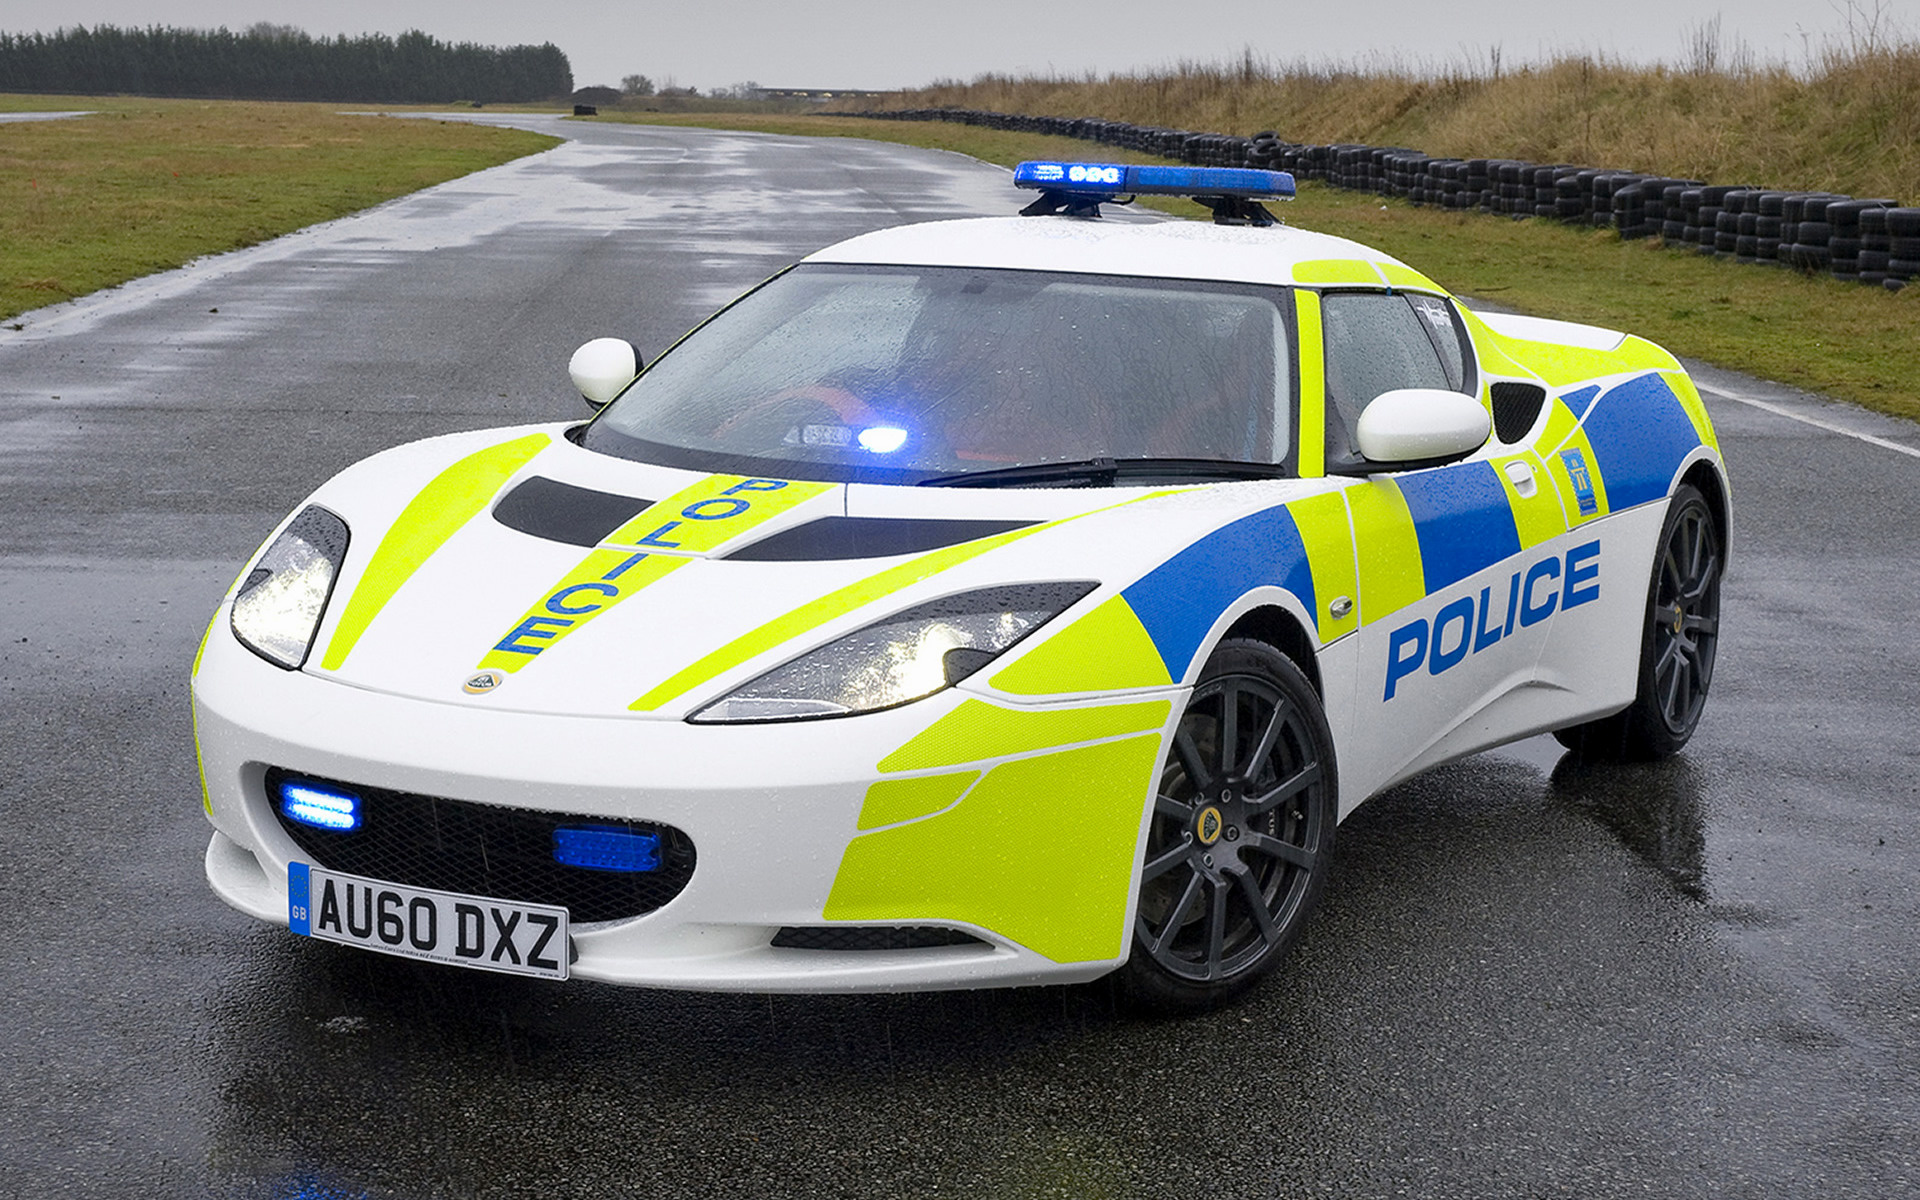 2010 Lotus Evora Police - Wallpapers and HD Images | Car Pixel